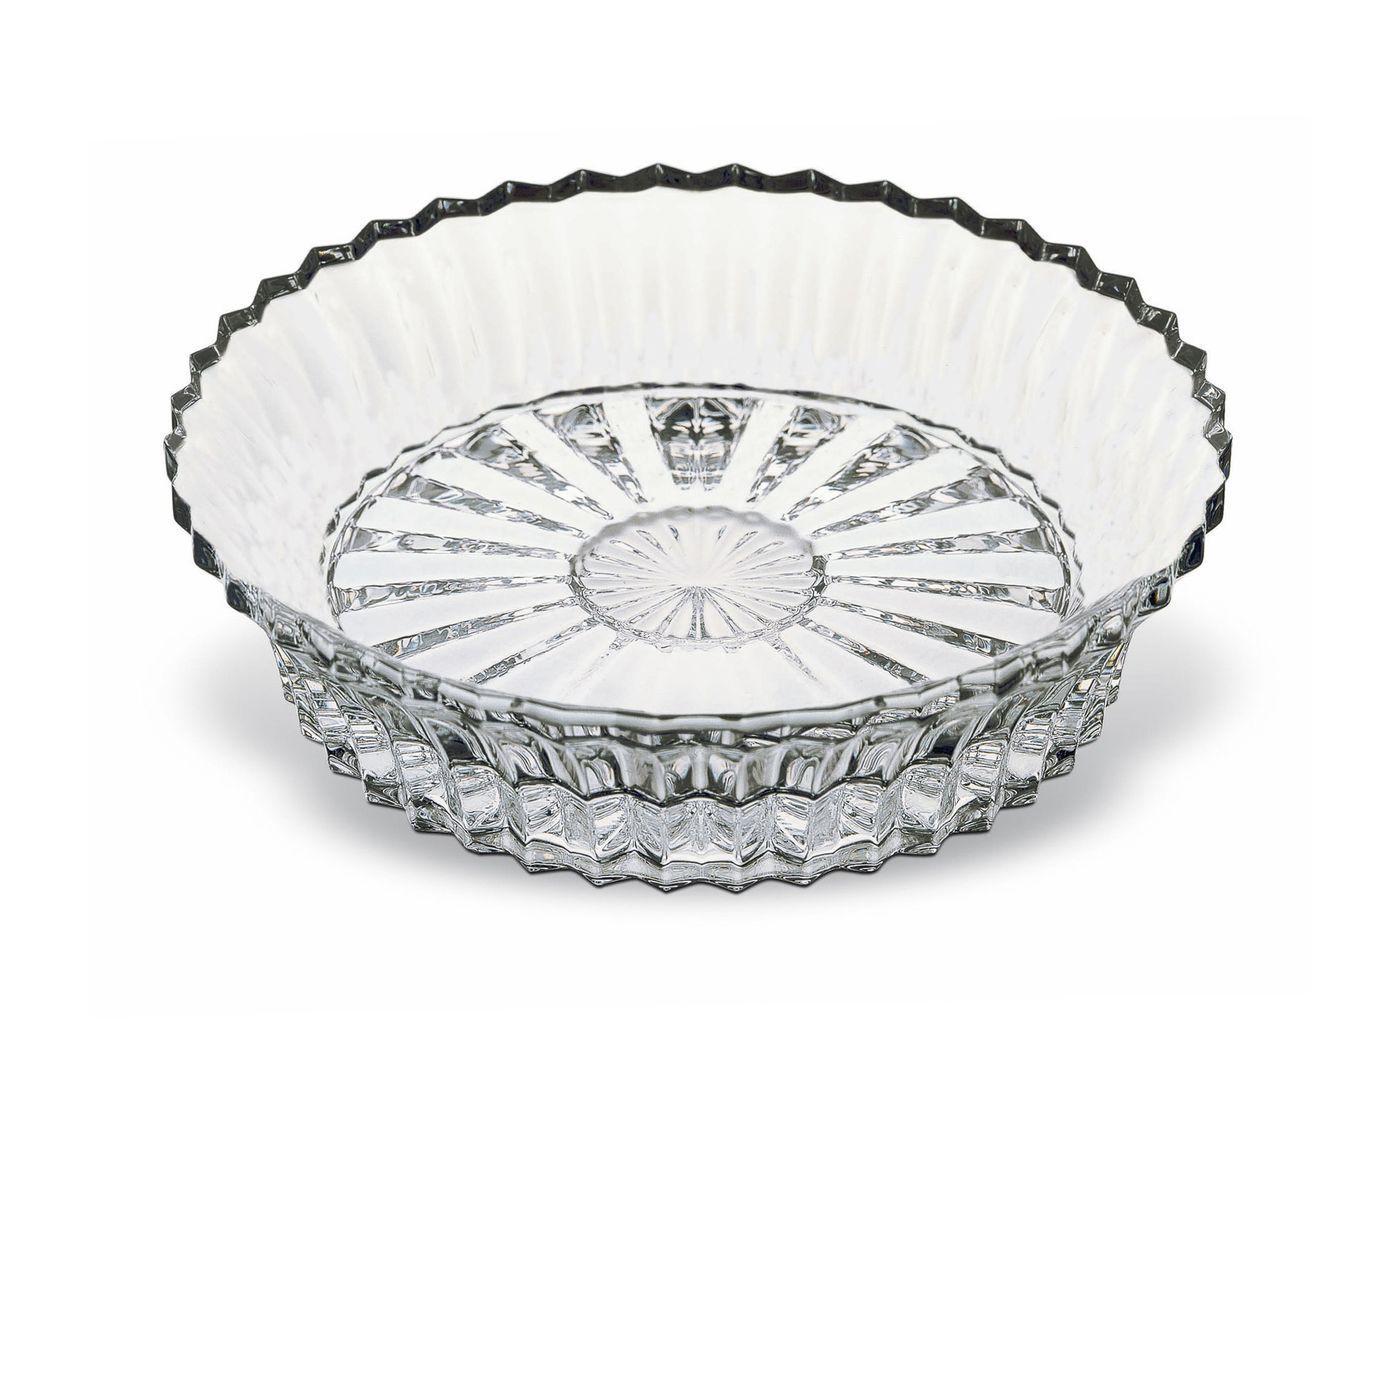 Mille Nuits Coaster Baccarat Crystal Wine Coasters Baccarat